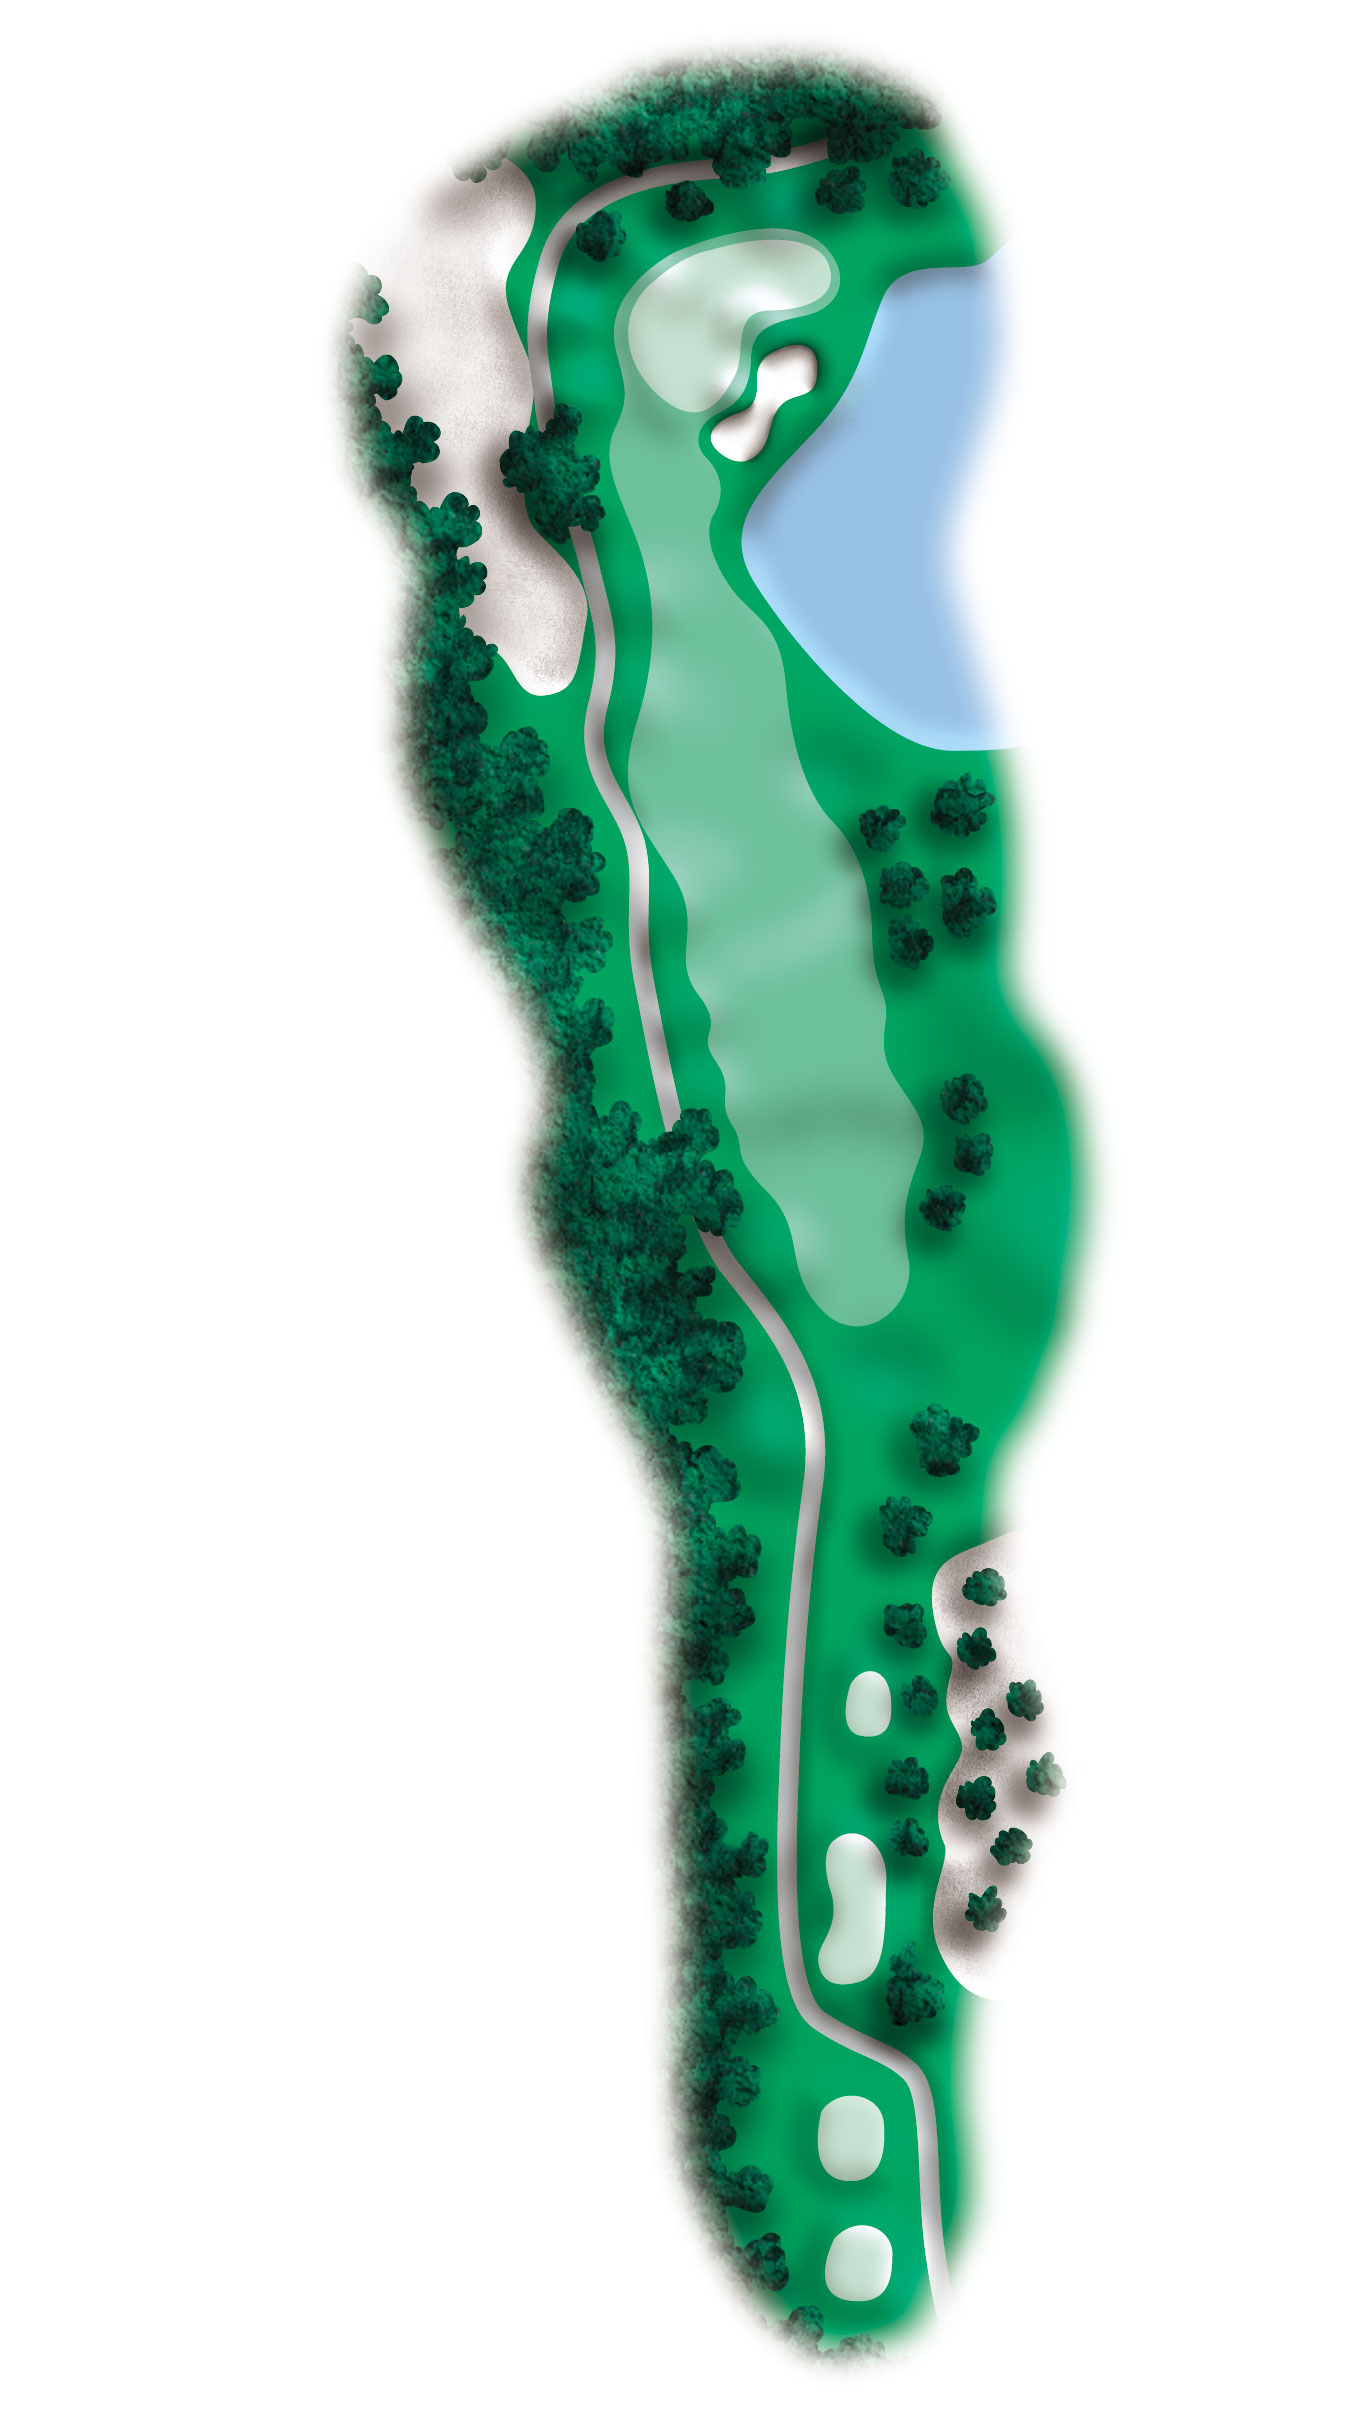 hole 6 diagram